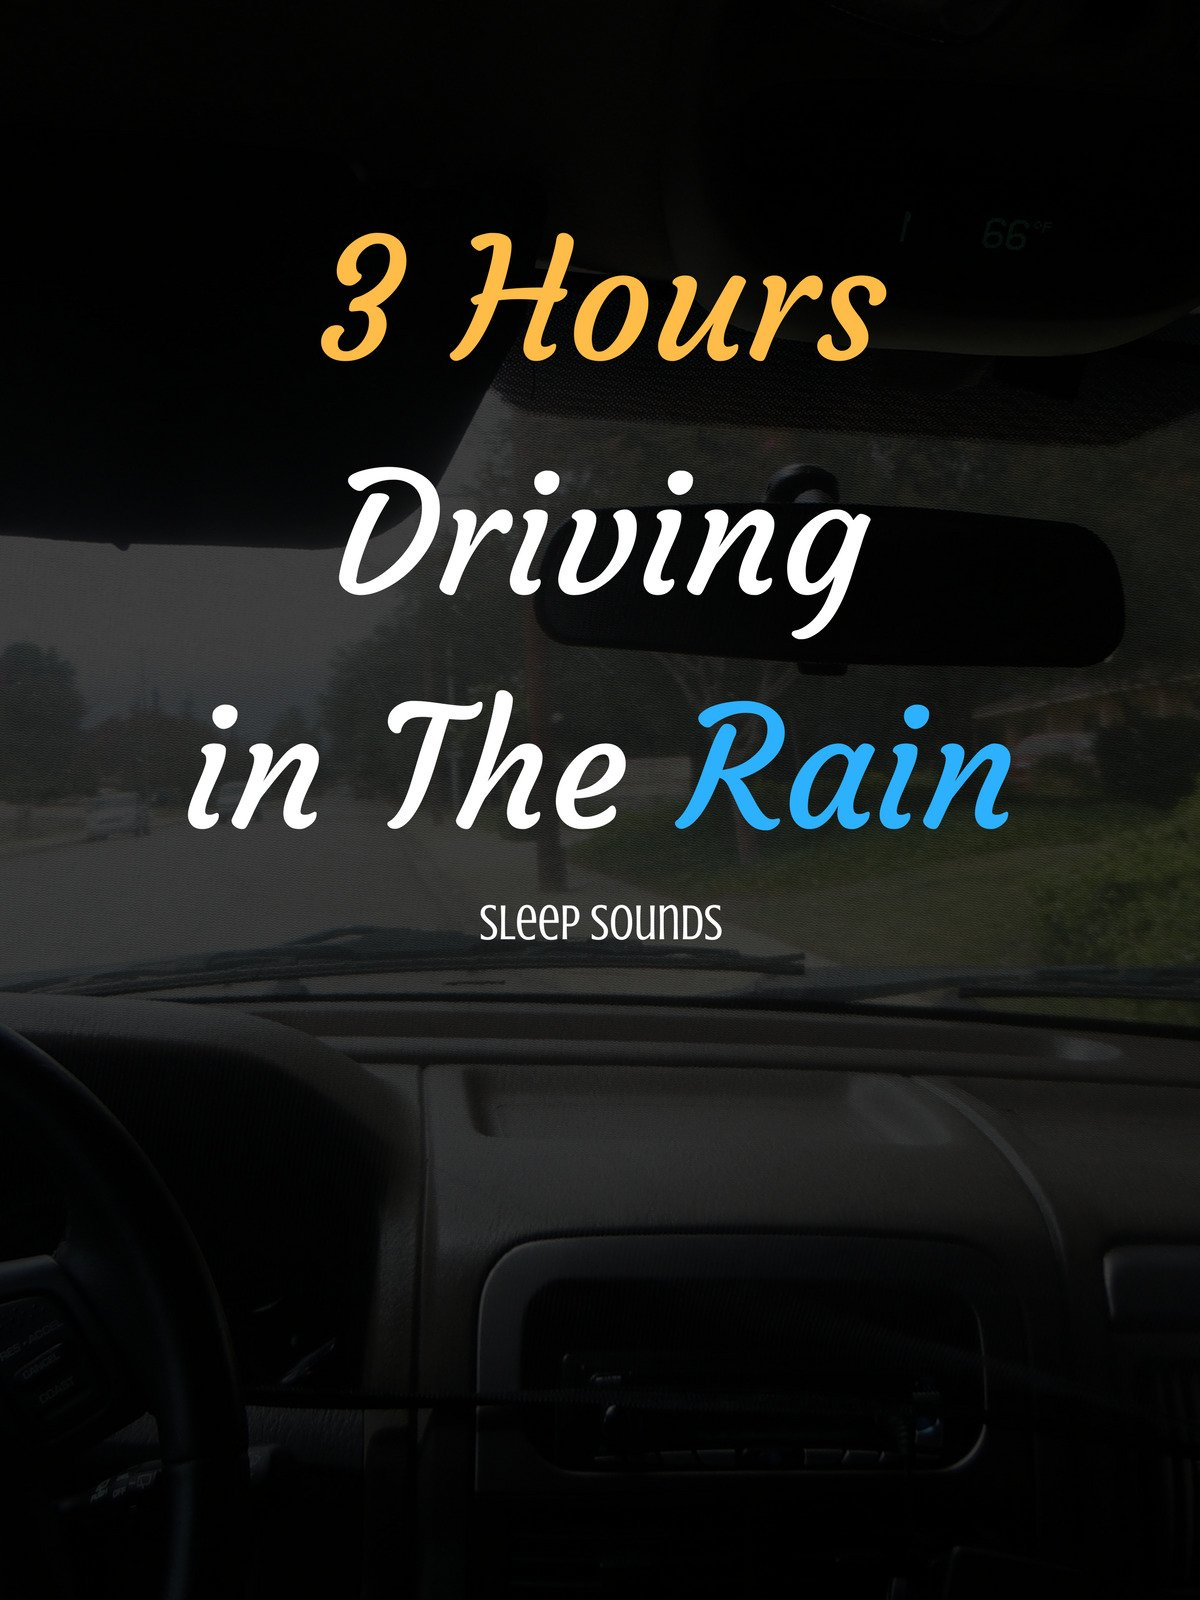 3 Hours Driving in The Rain